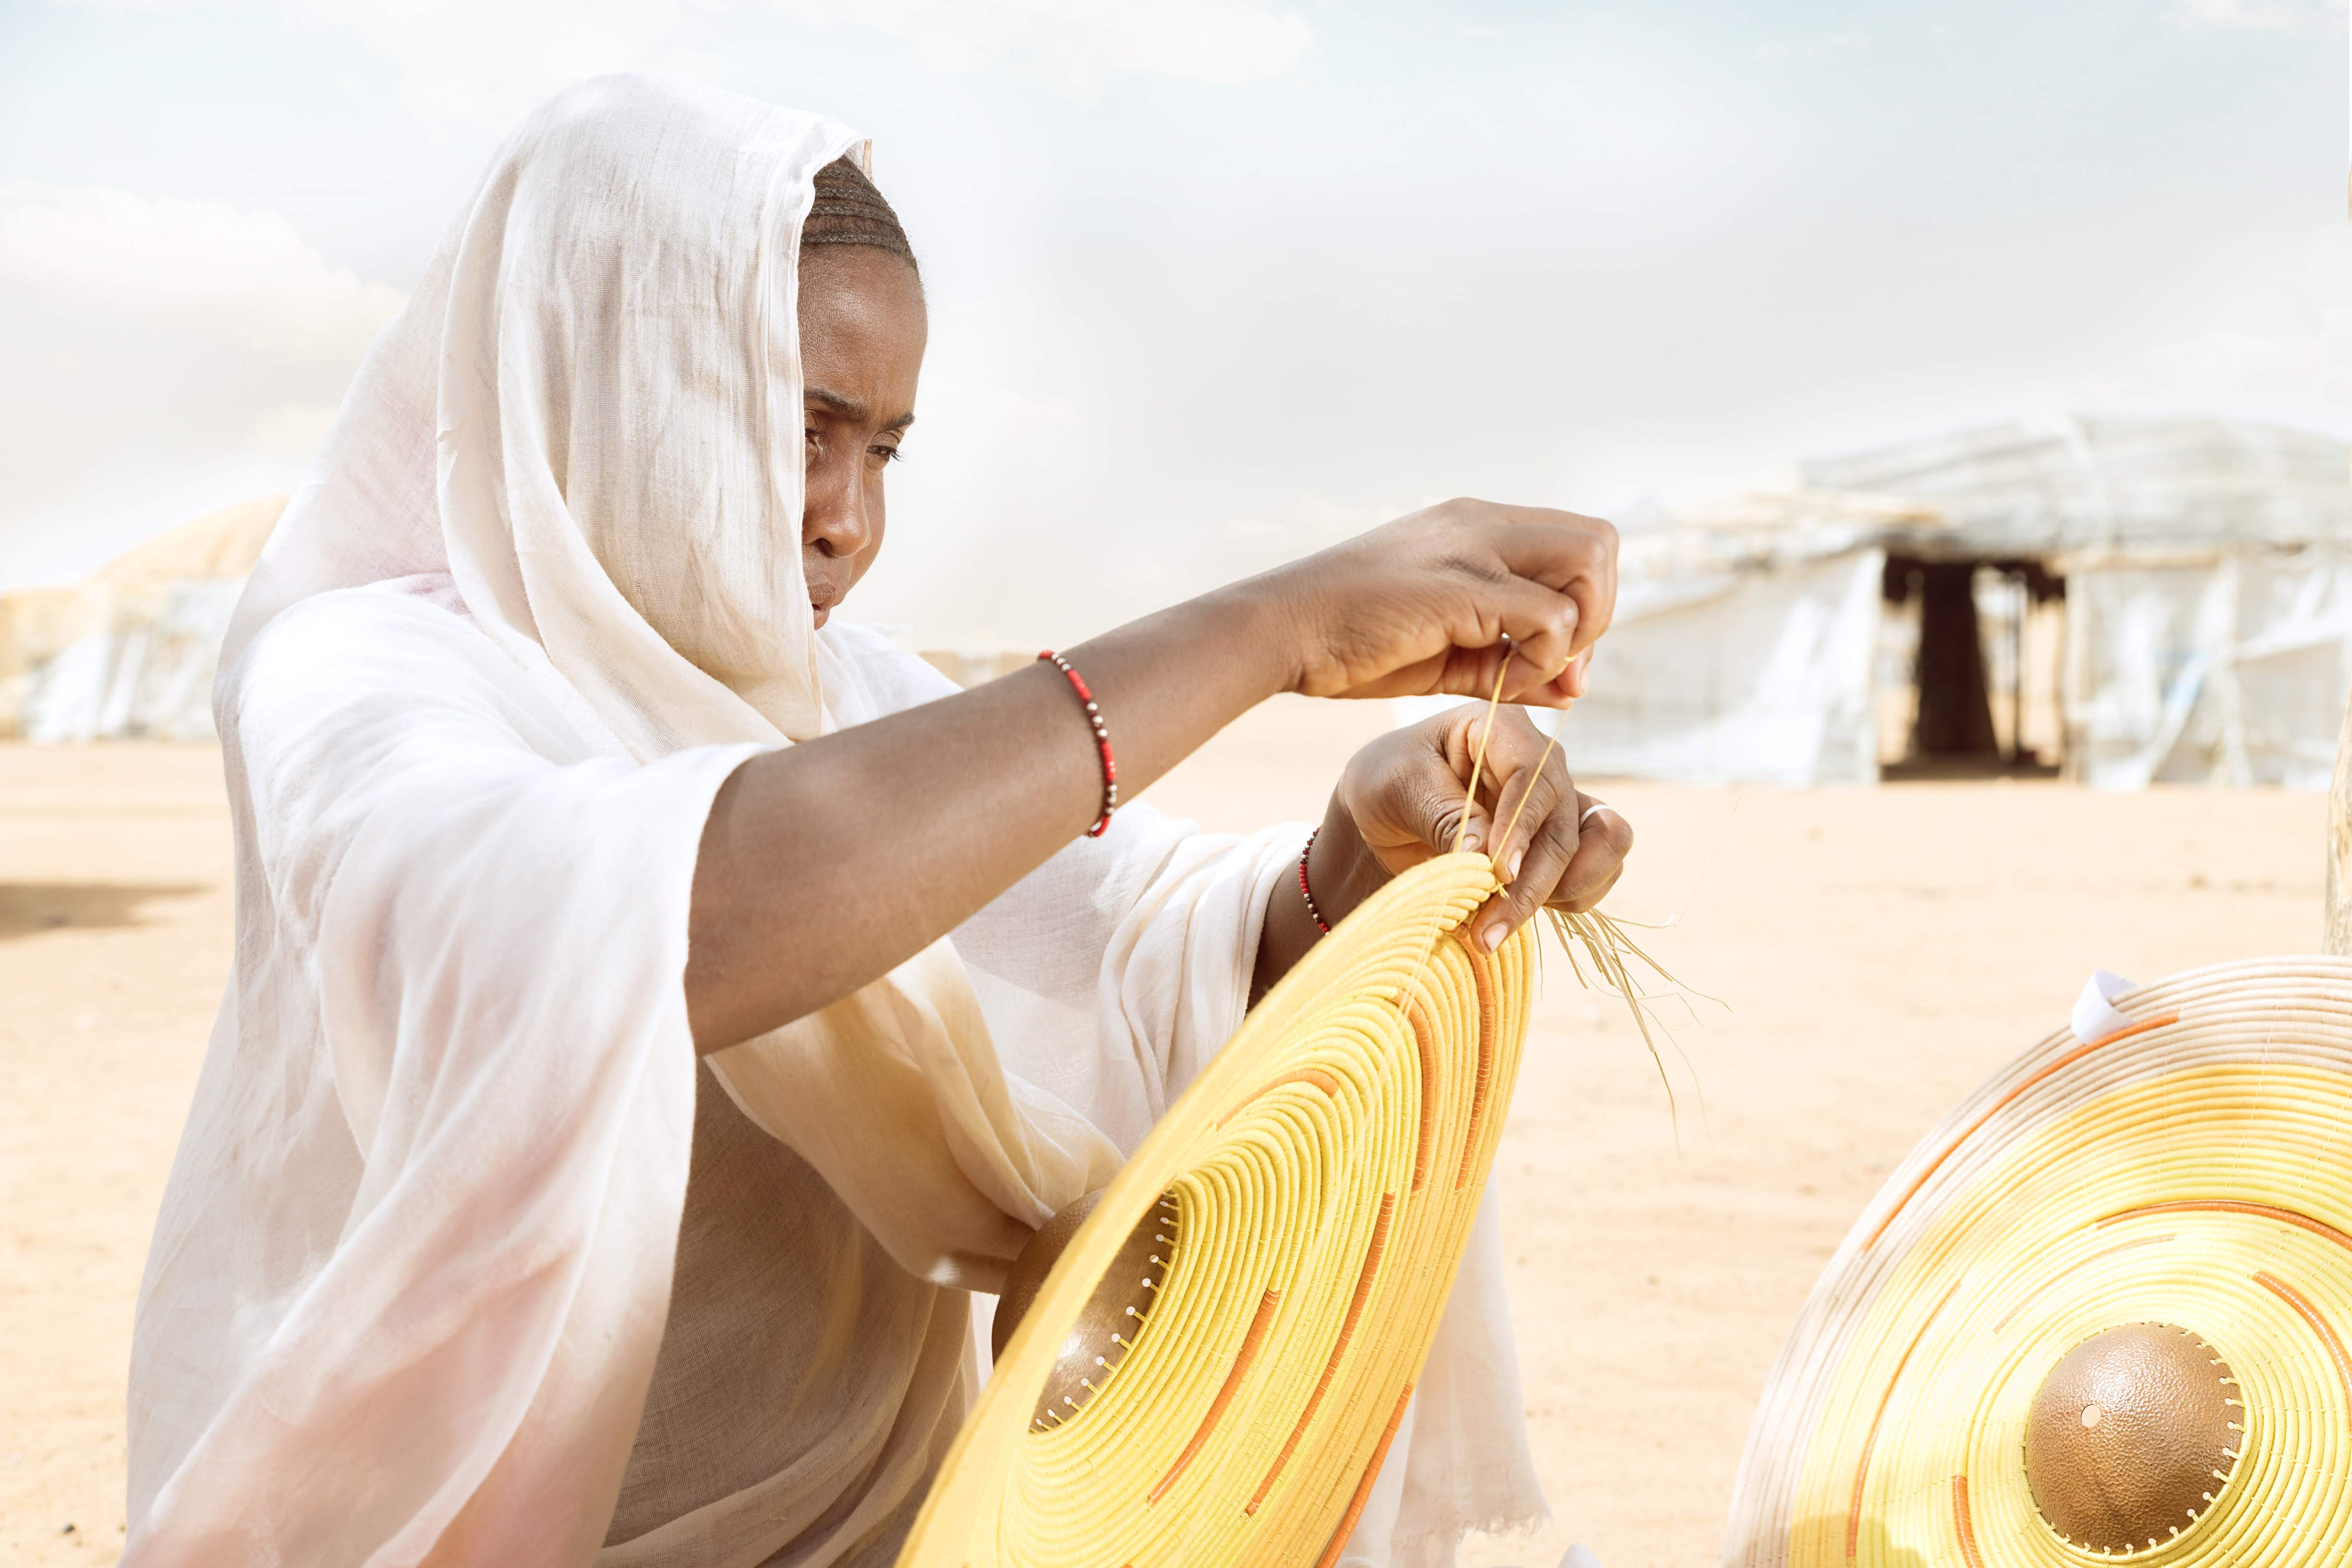 A refugee from Mali weaving a lampshade, using natural grass, leather and bronze.  The work of these Tuareg artisans is supported by the MADE51 partner AAKS. Photo: UNHCR/AAKS